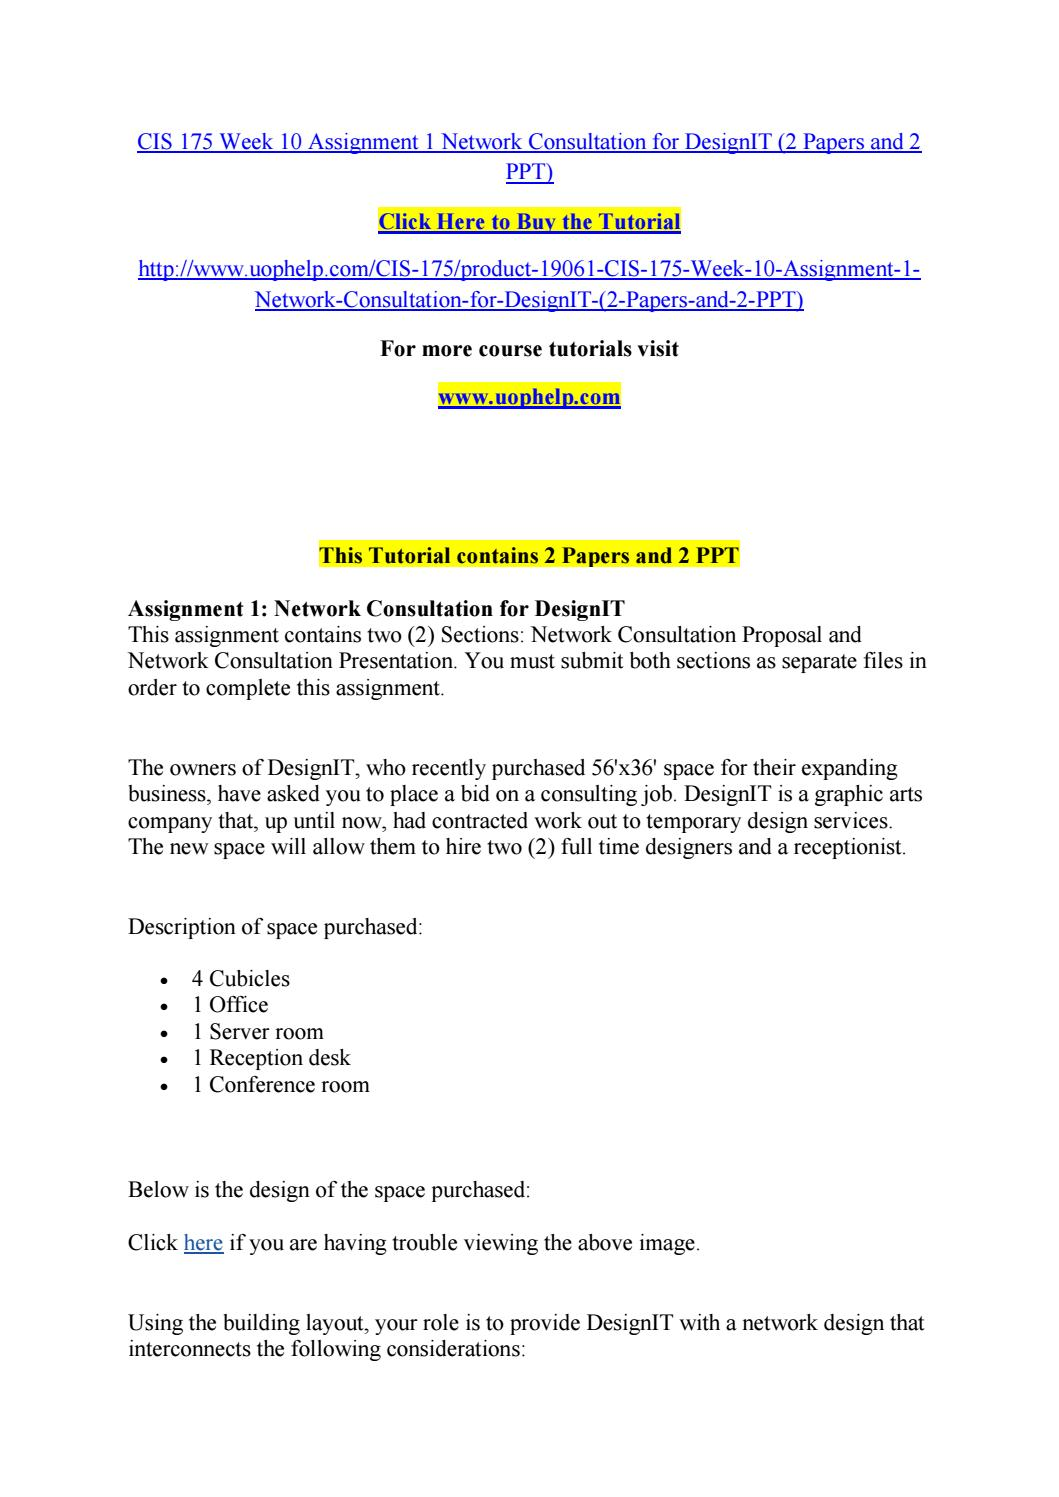 Cis 175 week 10 assignment 1 network consultation for